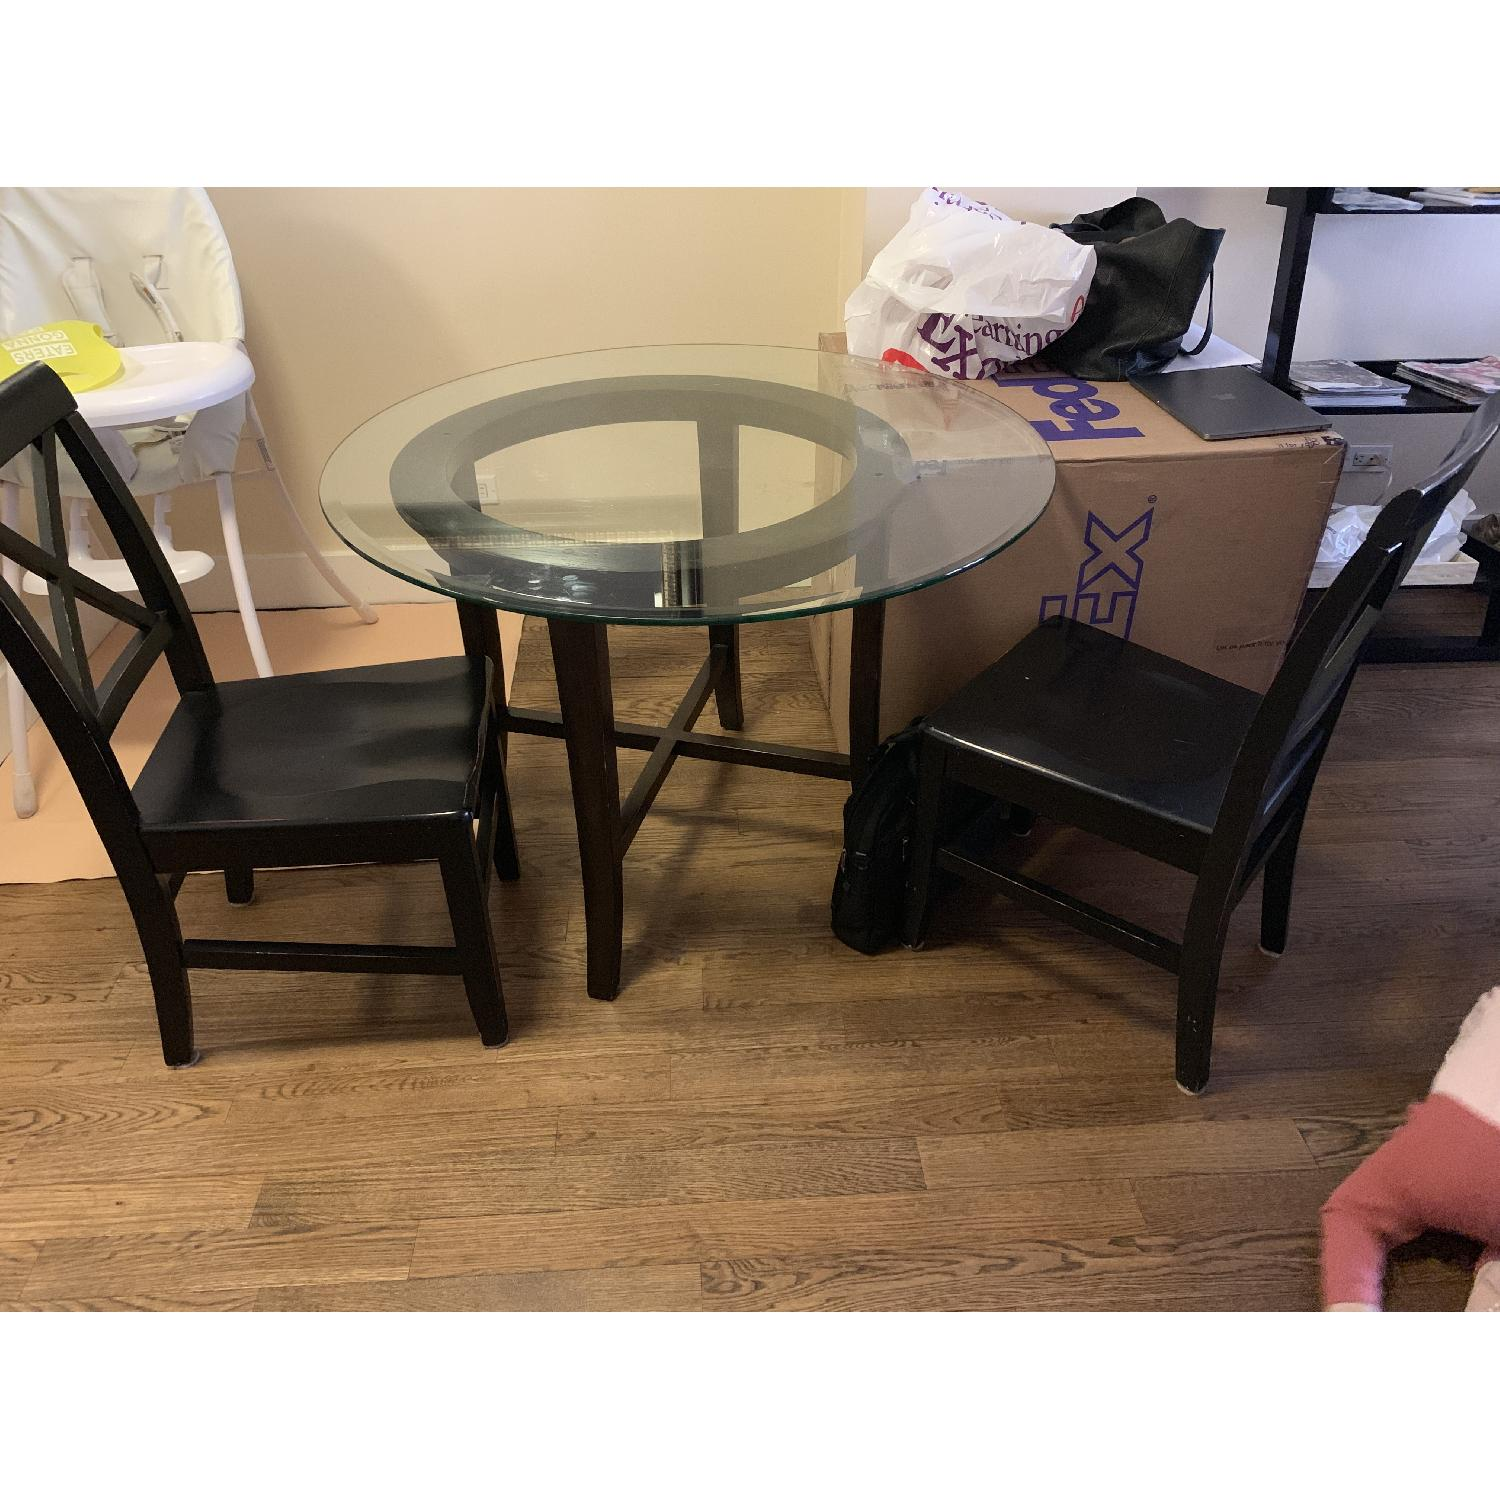 Crate & Barrel Halo Ebony Glass Top Dining Table w/ 2 Chairs-2